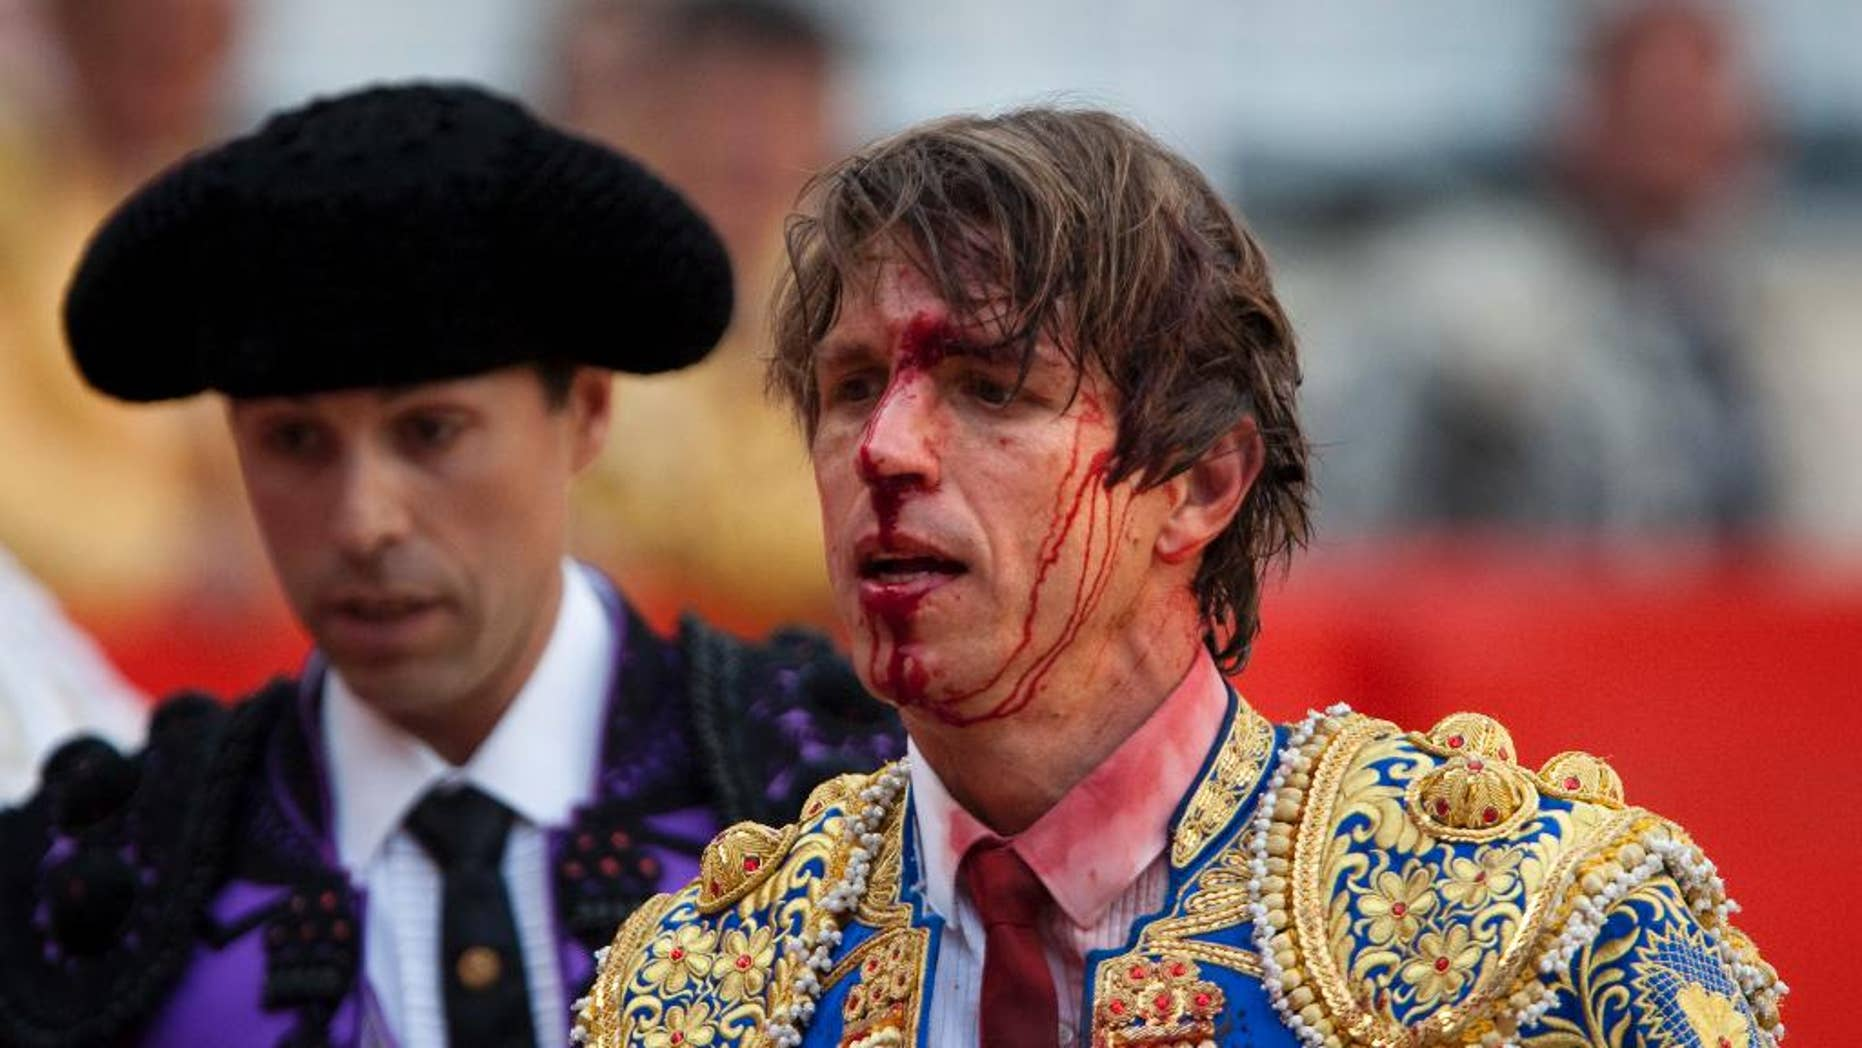 "FILE - In this April 25, 2010 file photo, bullfighter Manuel Diaz ""El Cordobes"", right, reacts after being gored by a bull during a bullfight at the Monumental Bullring in Barcelona, Spain. The southern Cordoba city court has held a hearing into a decades-old paternity dispute over whether two of Spain's most well-known bullfighters and who share the same showname, 'El Cordobes', are really father and son. The court began studying the claim Thursday April 28, 2016 by Manuel Diaz, 47 that he is the son of retired bullfighting legend Manuel Benitez, 79, something the elder torero has never recognized. (AP Photo/Emilio Morenatti, File)"